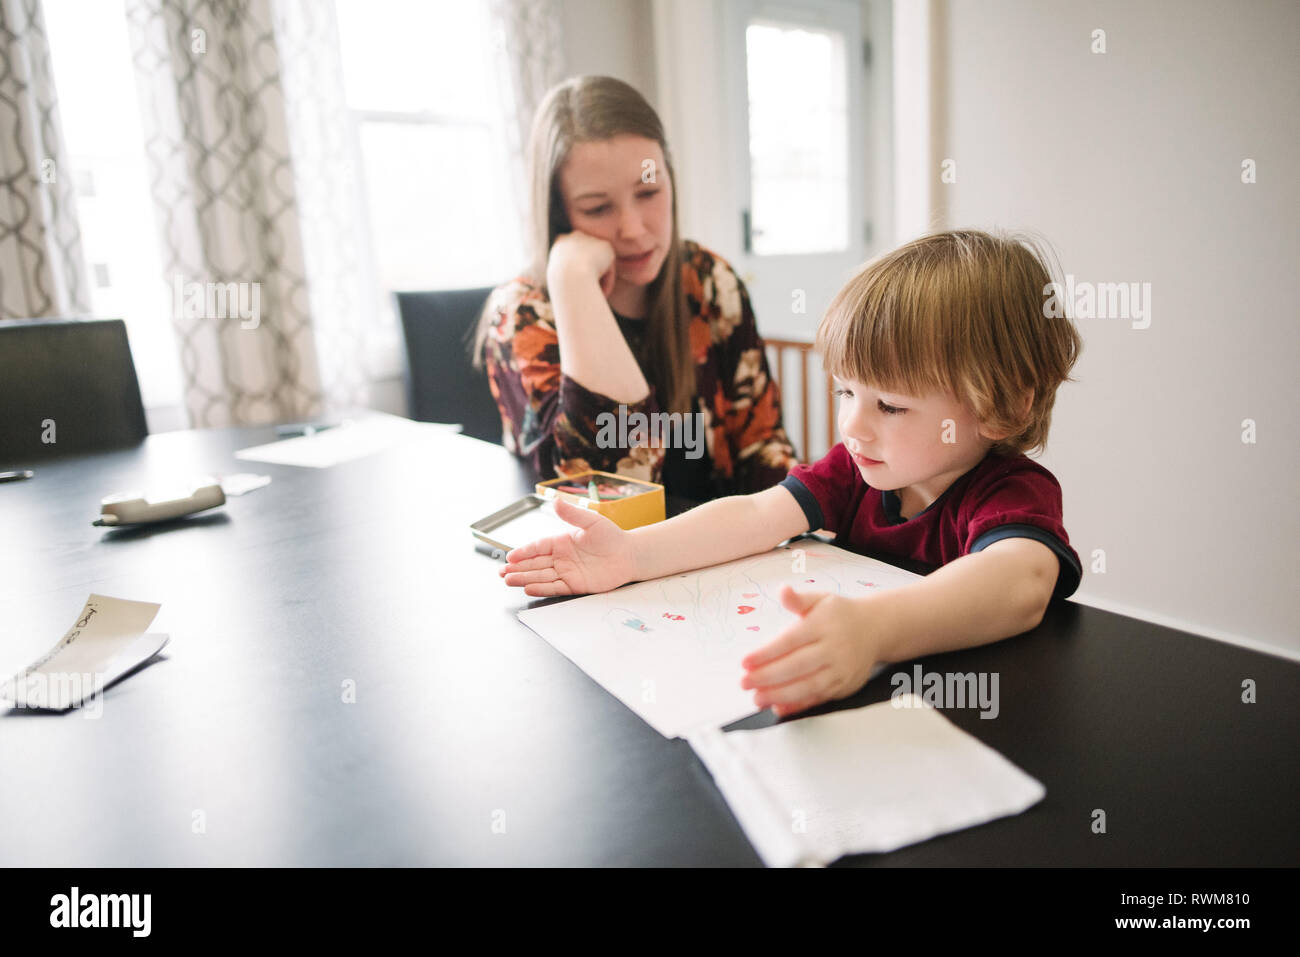 Mother watching over son learning at table Stock Photo